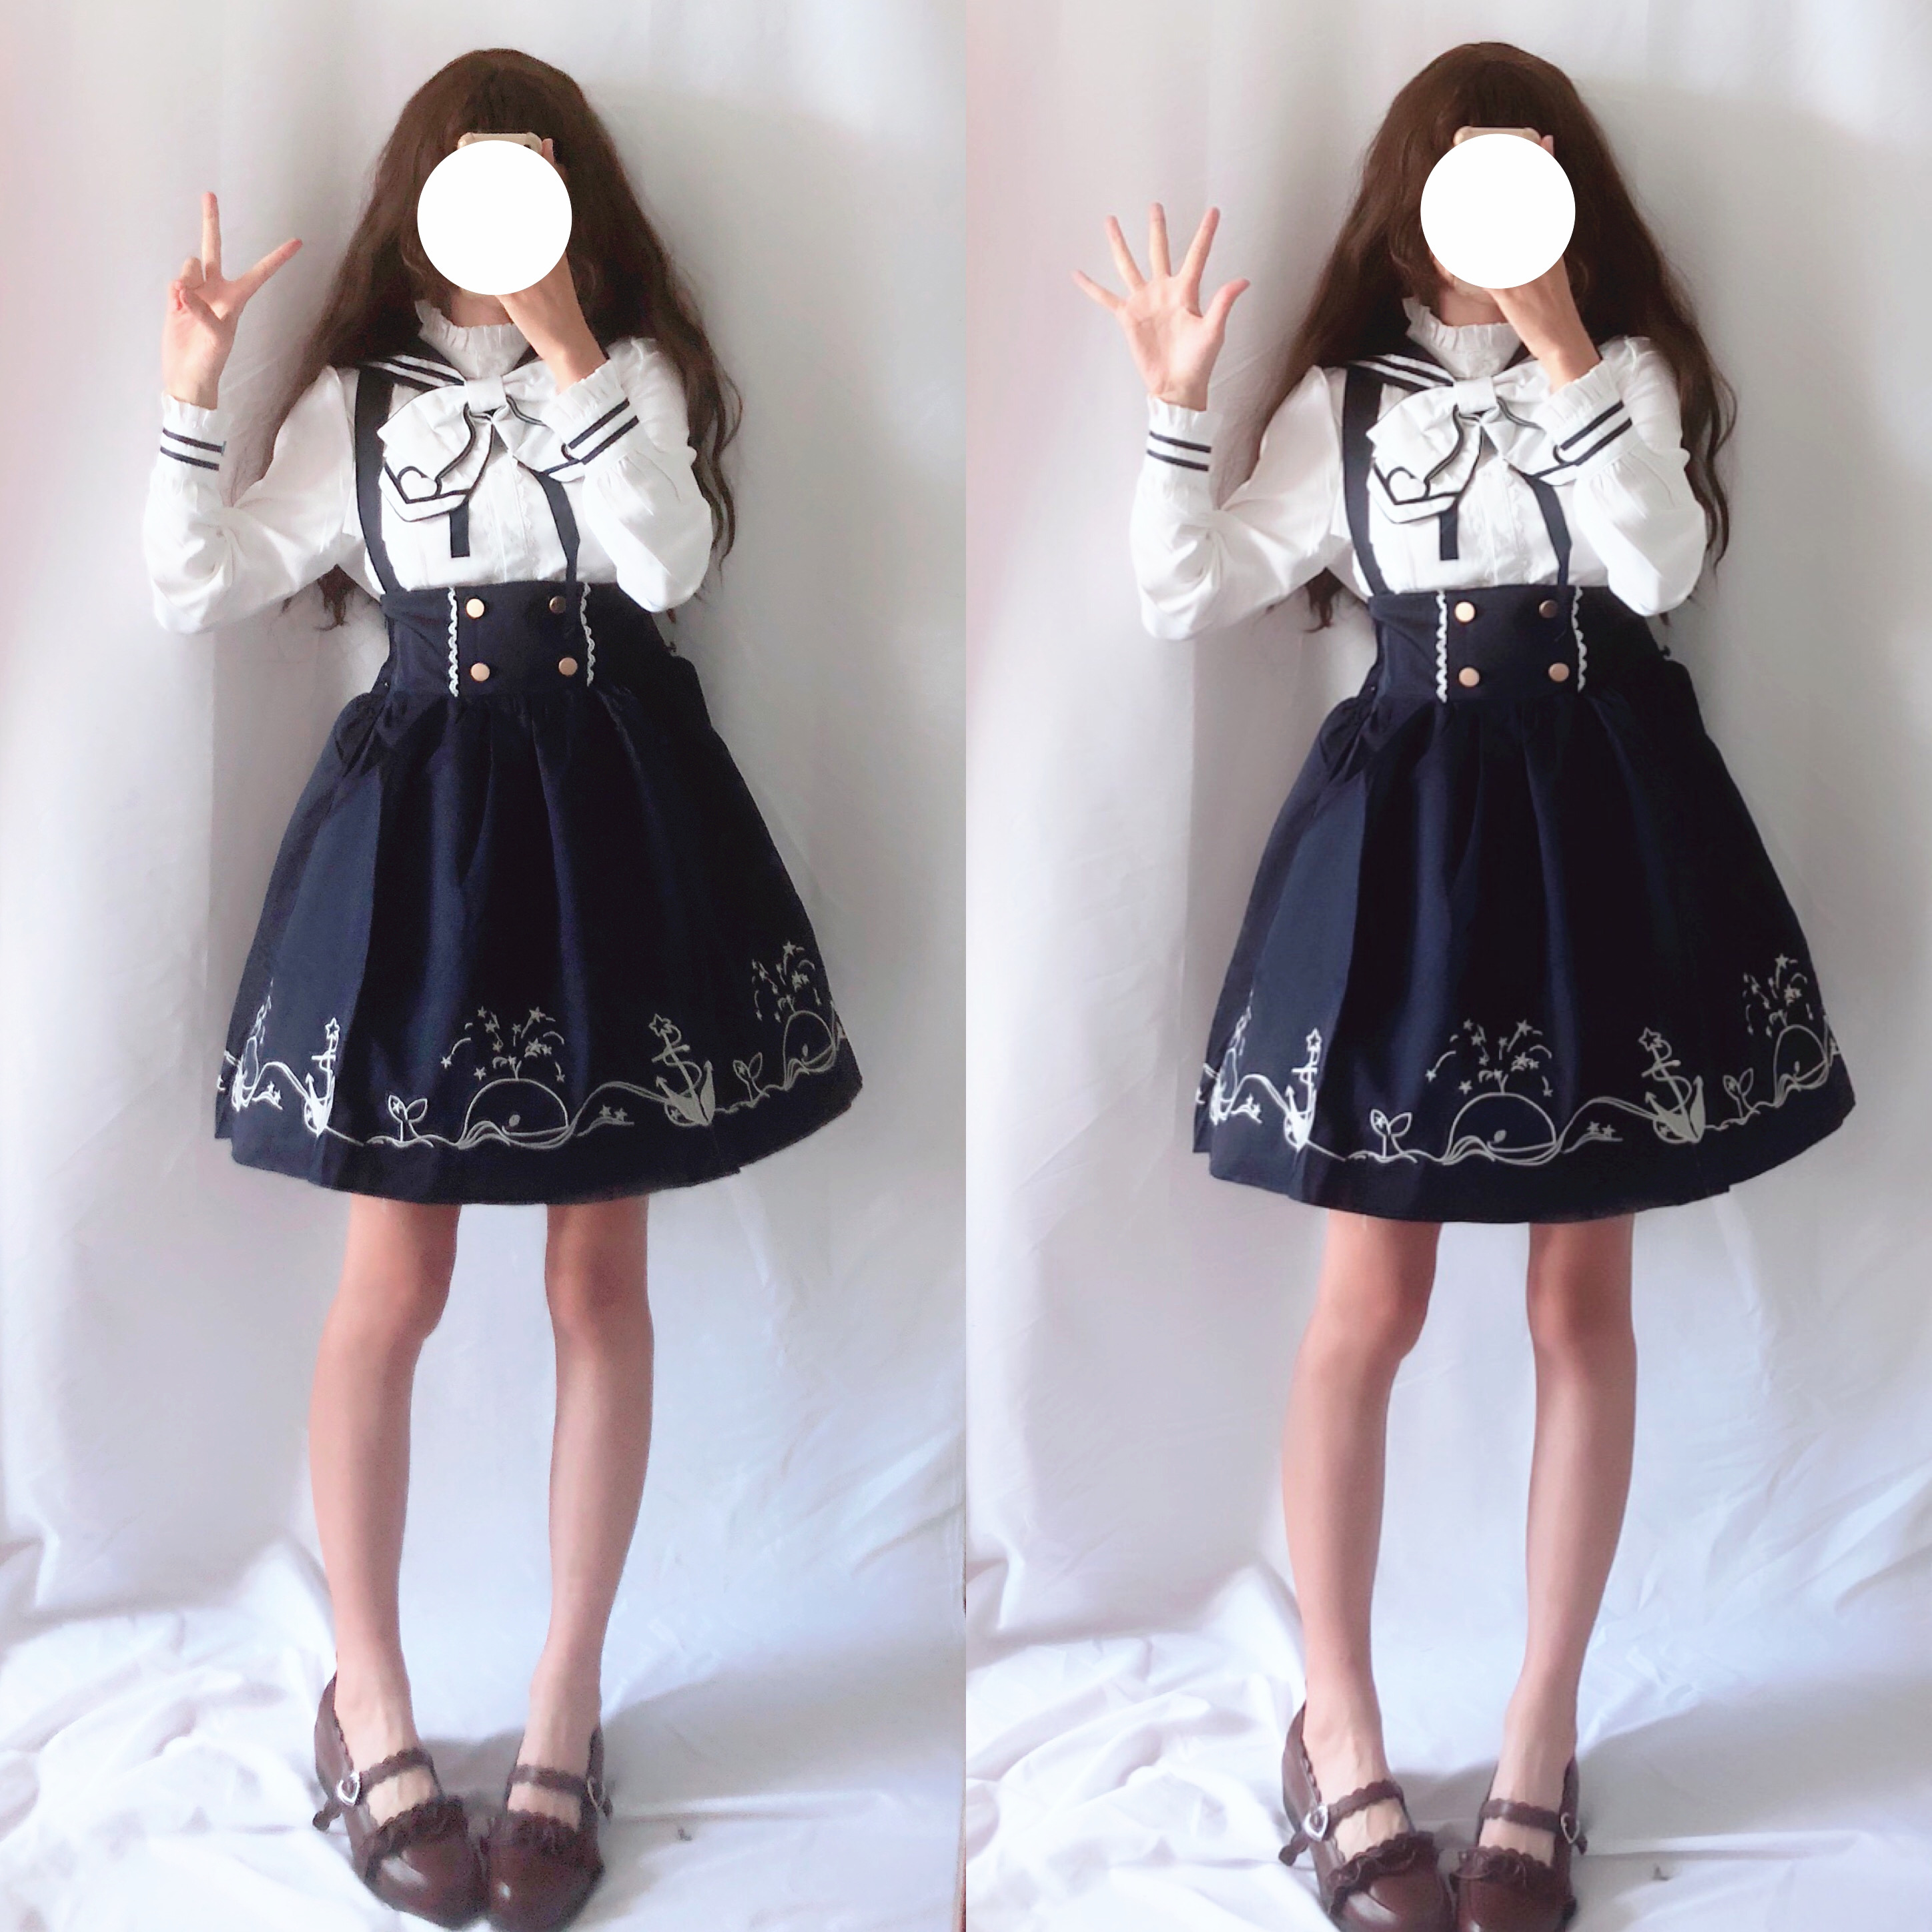 2019 Hot Sale New Spring And Autumn Department Soft Girl Lolita Daily Dress Female Student Two Suit Skirts